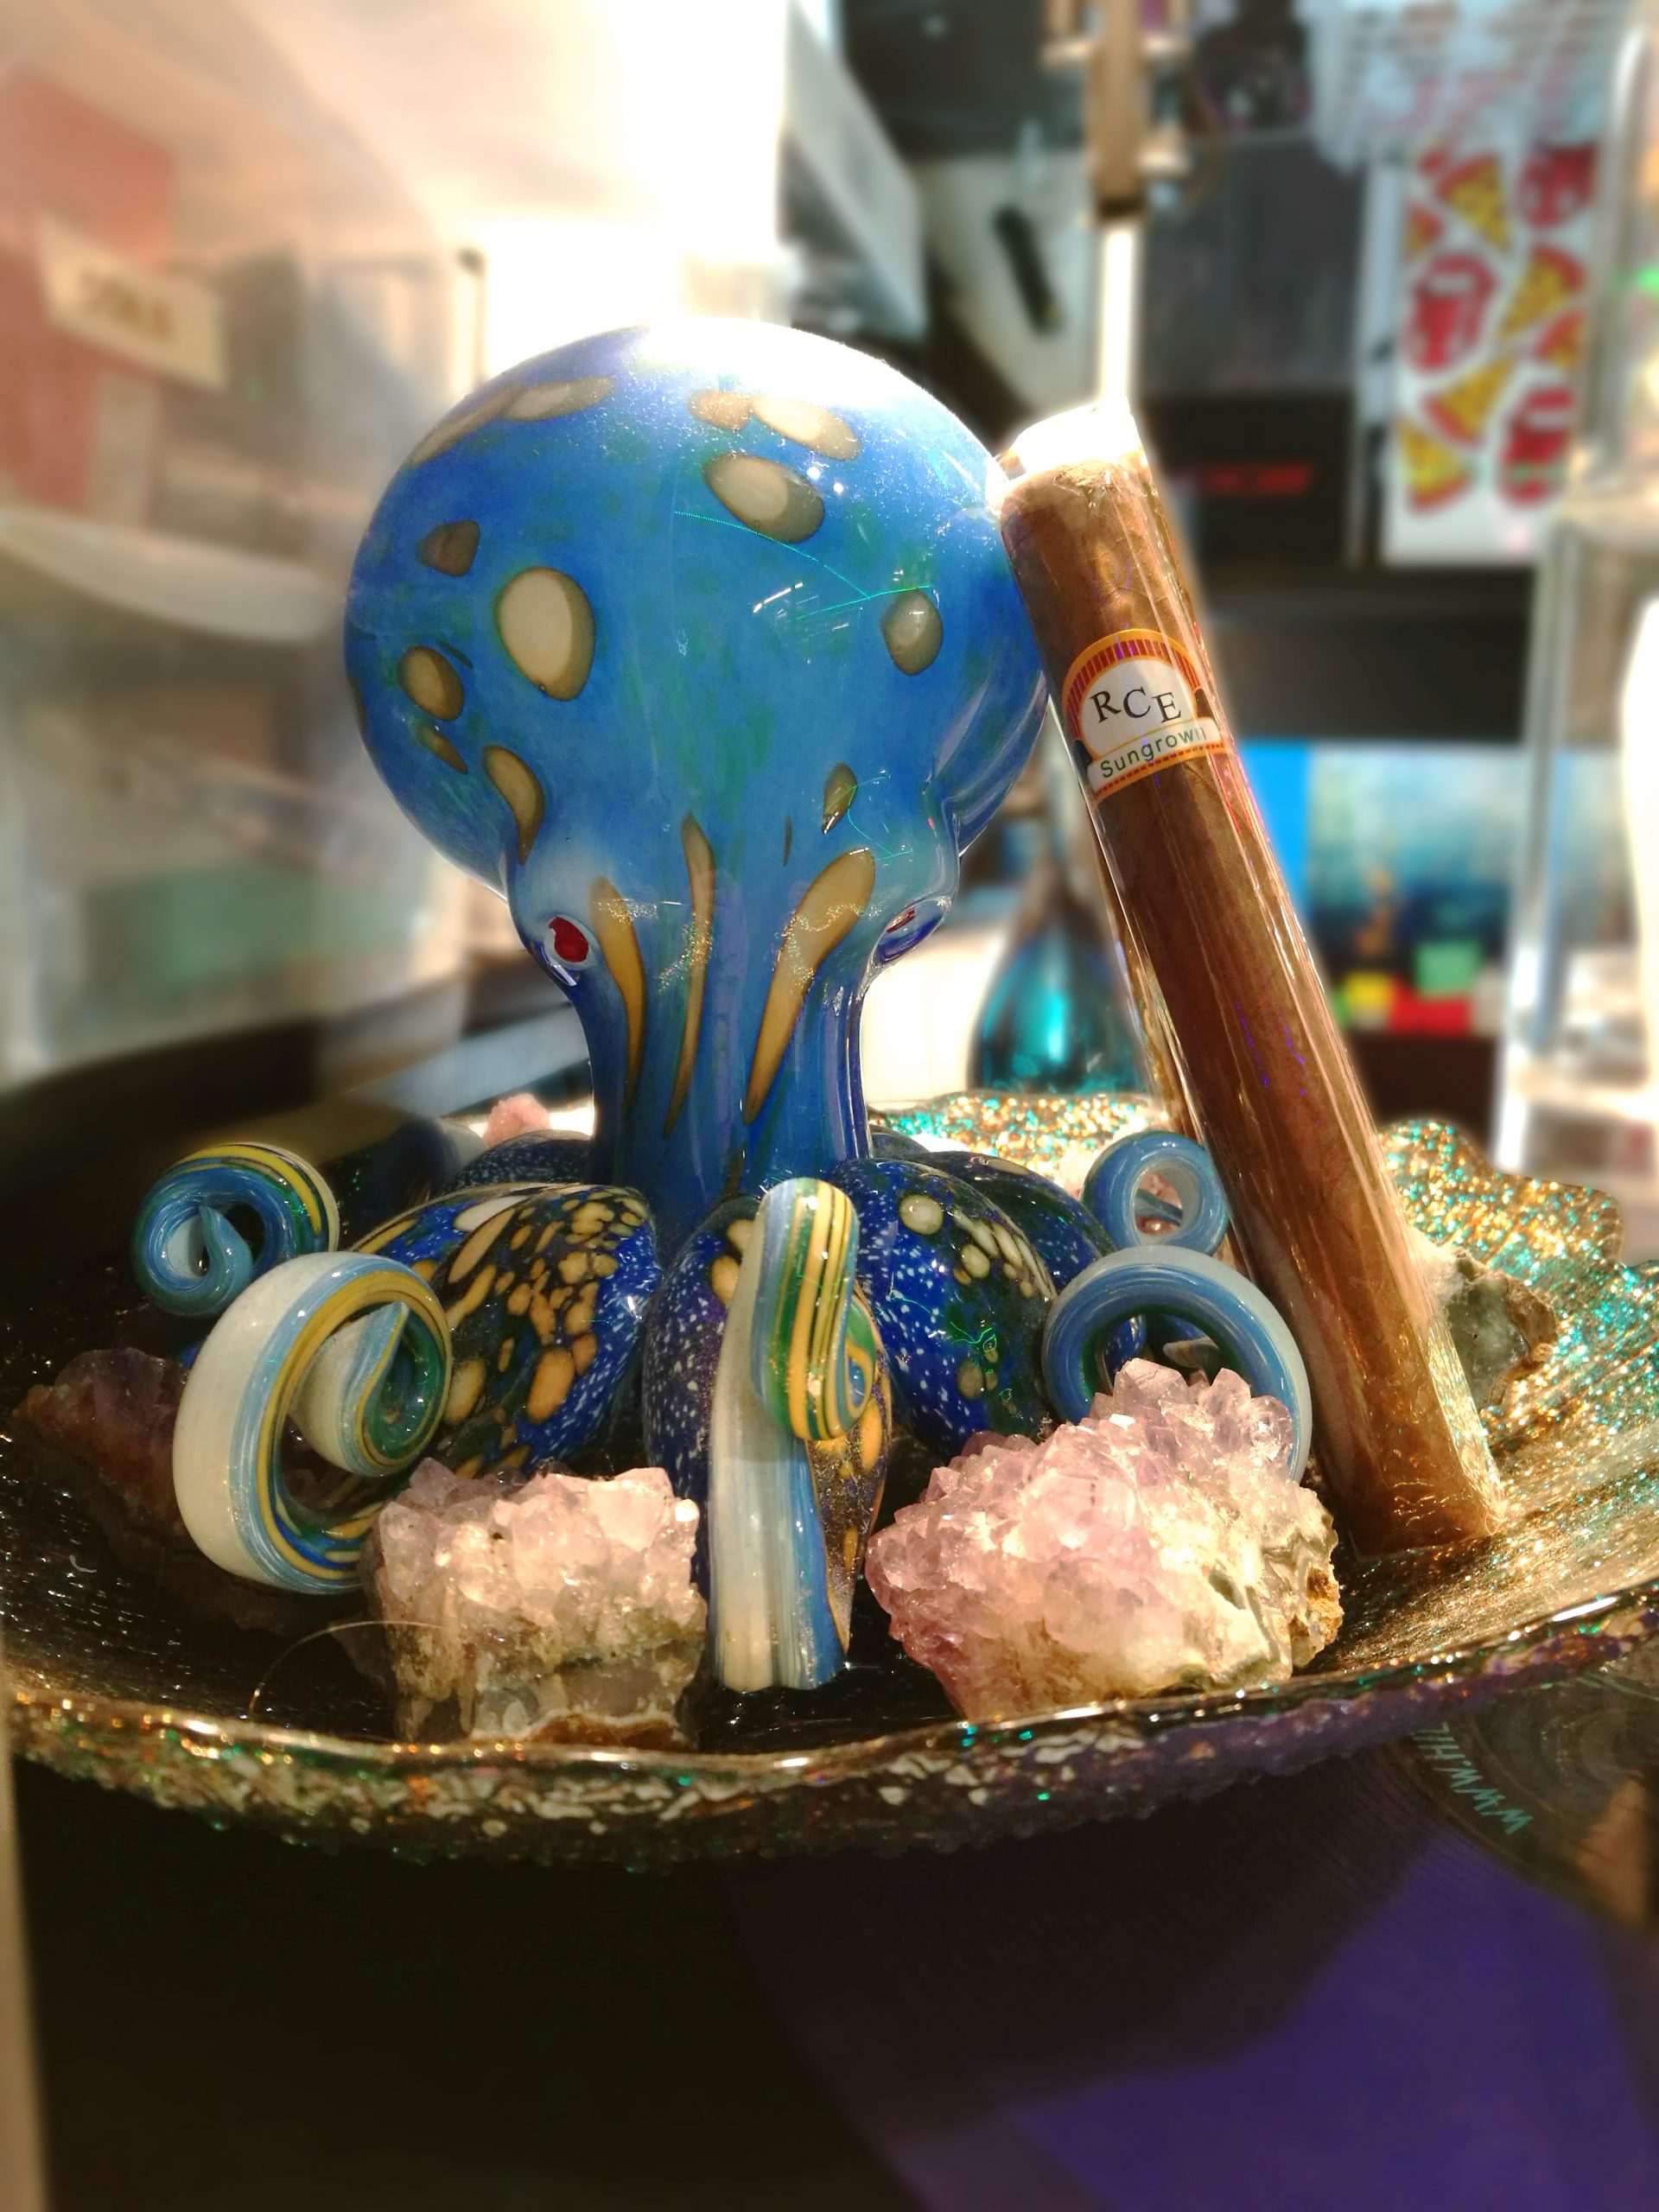 RCE cigar leaning on a glass octopus